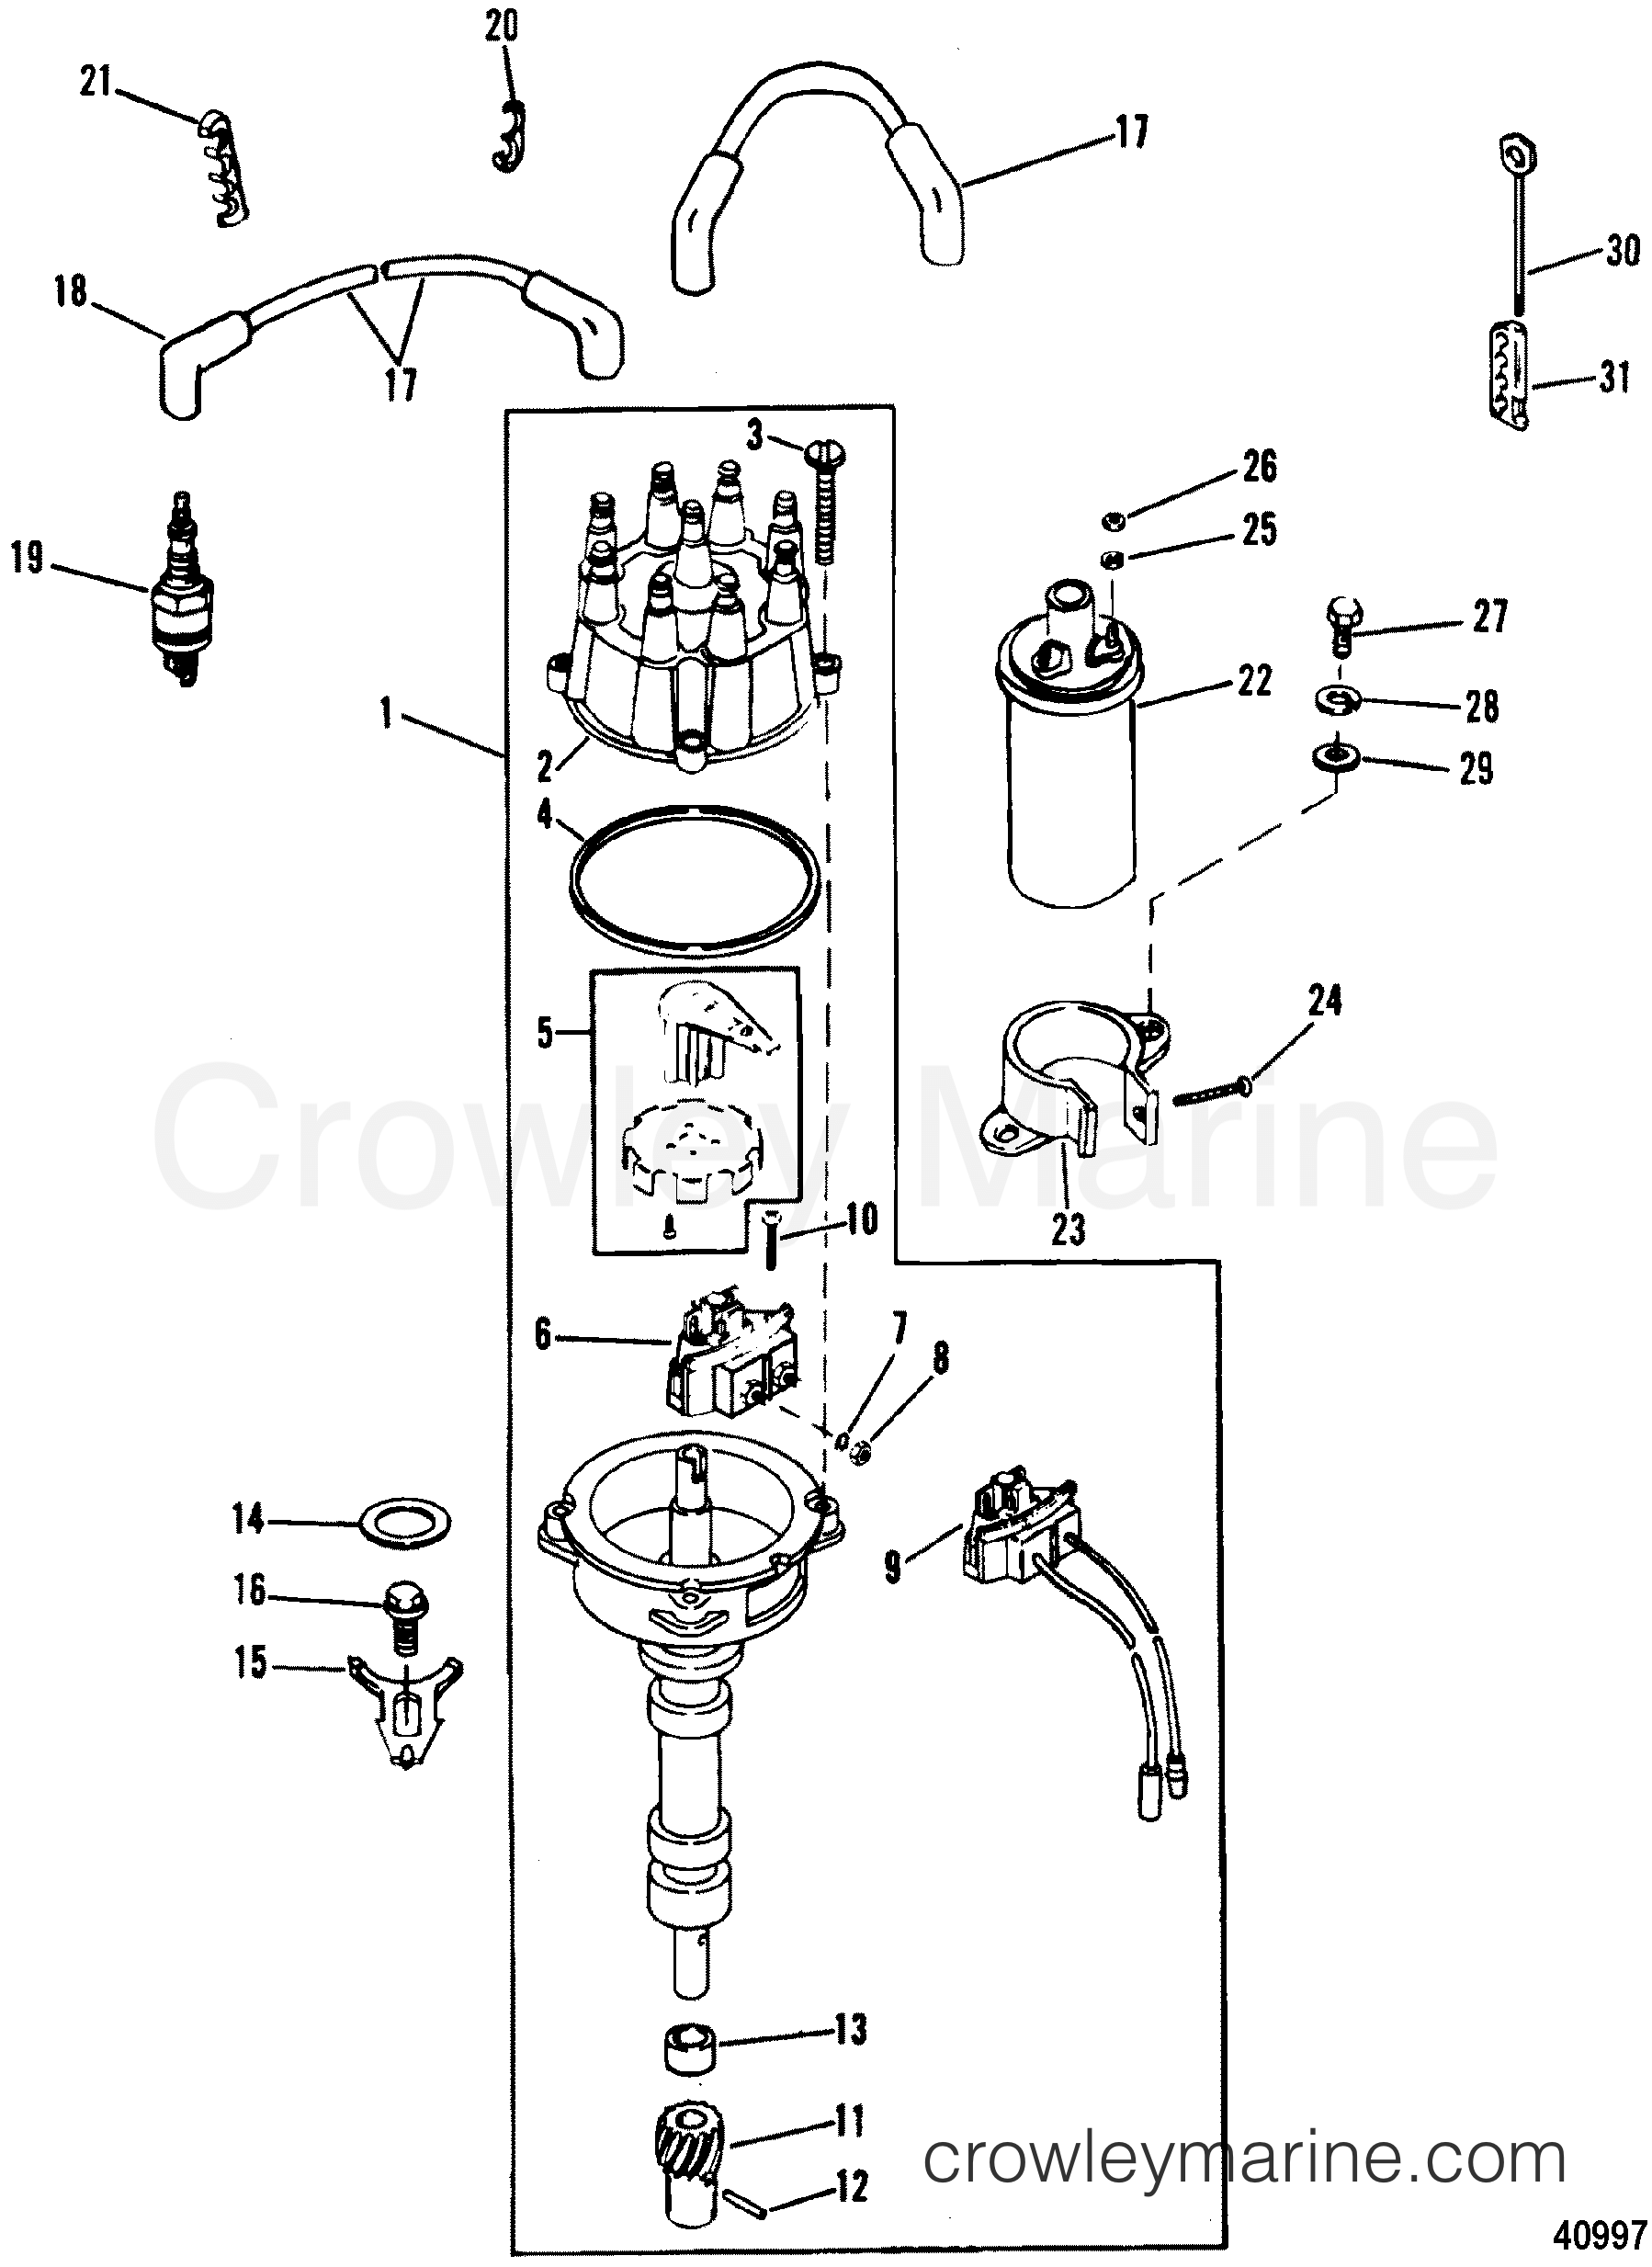 thunderbolt iv ignition wiring diagram